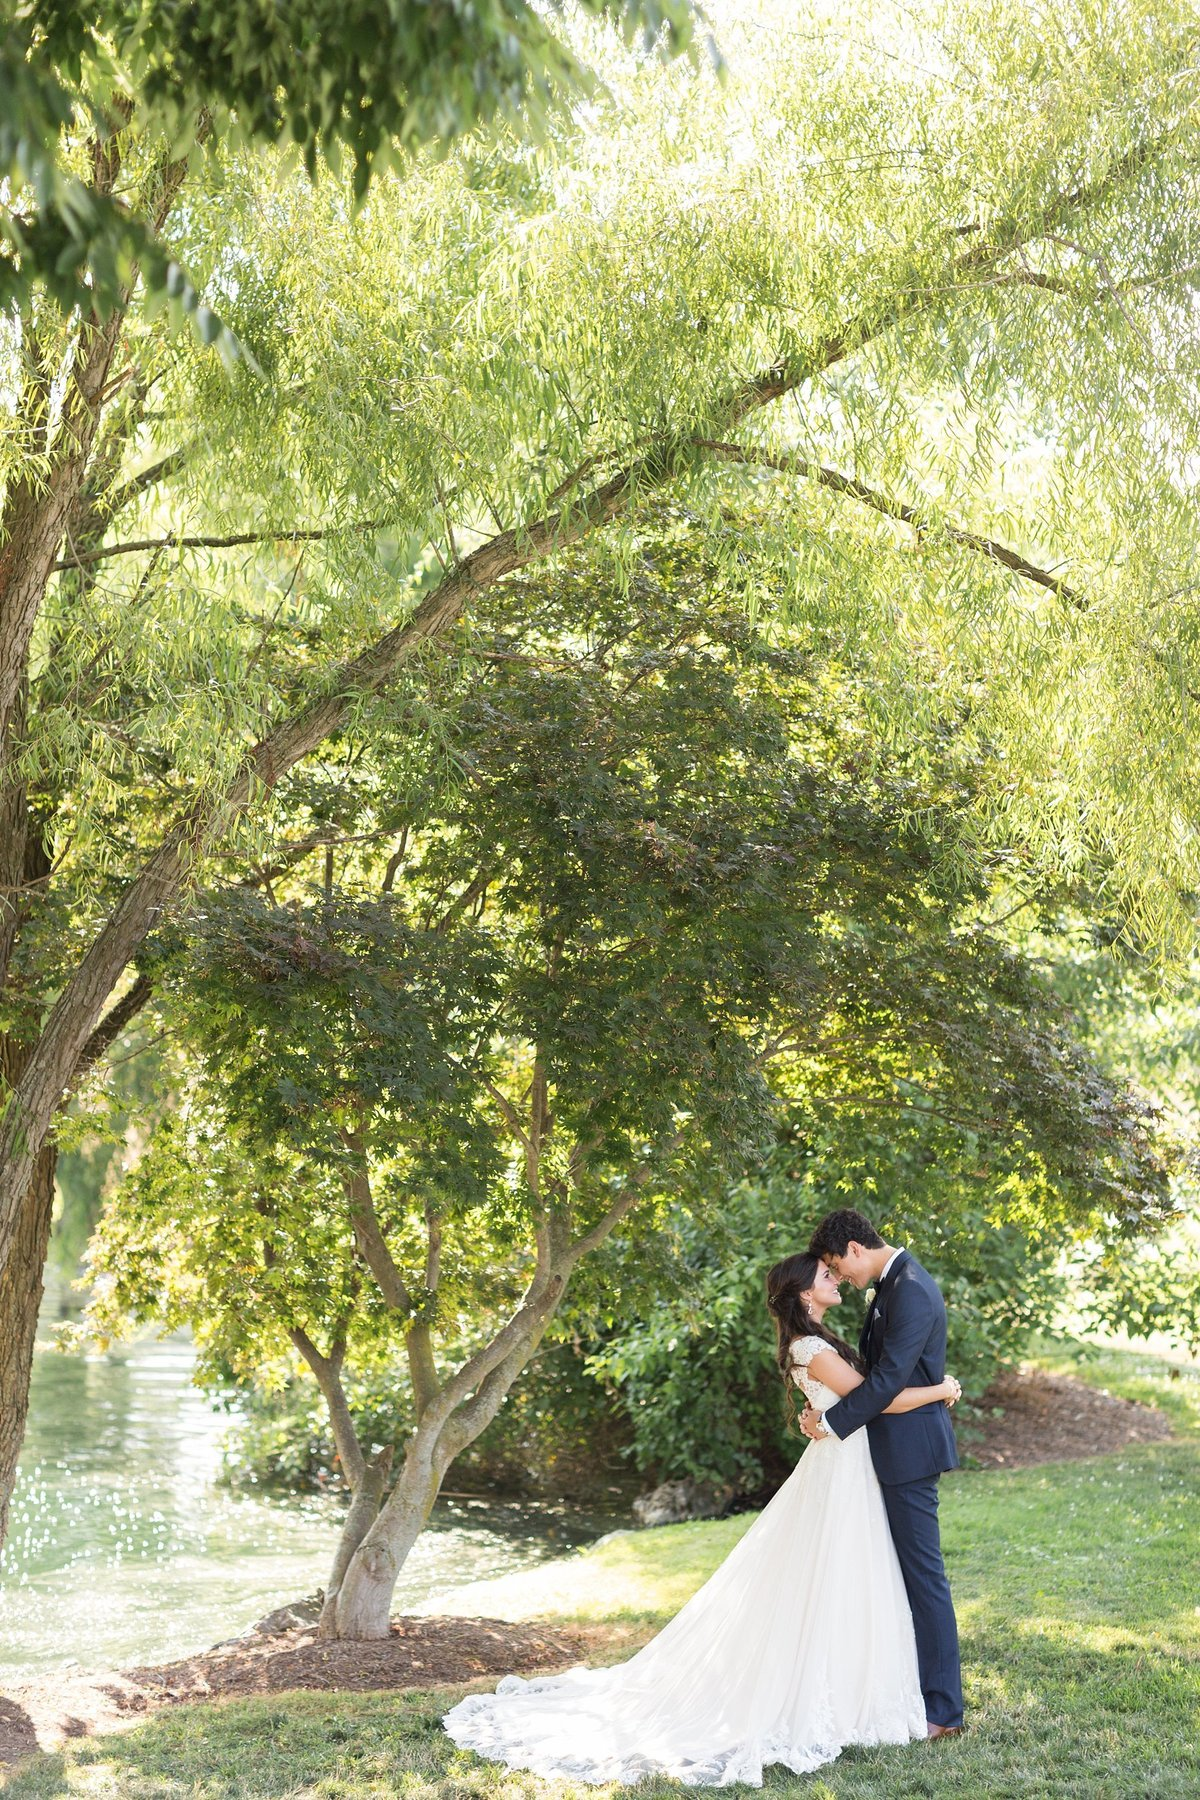 Bri-Cibene-Photography-Featured-Wedding-Lim_0033